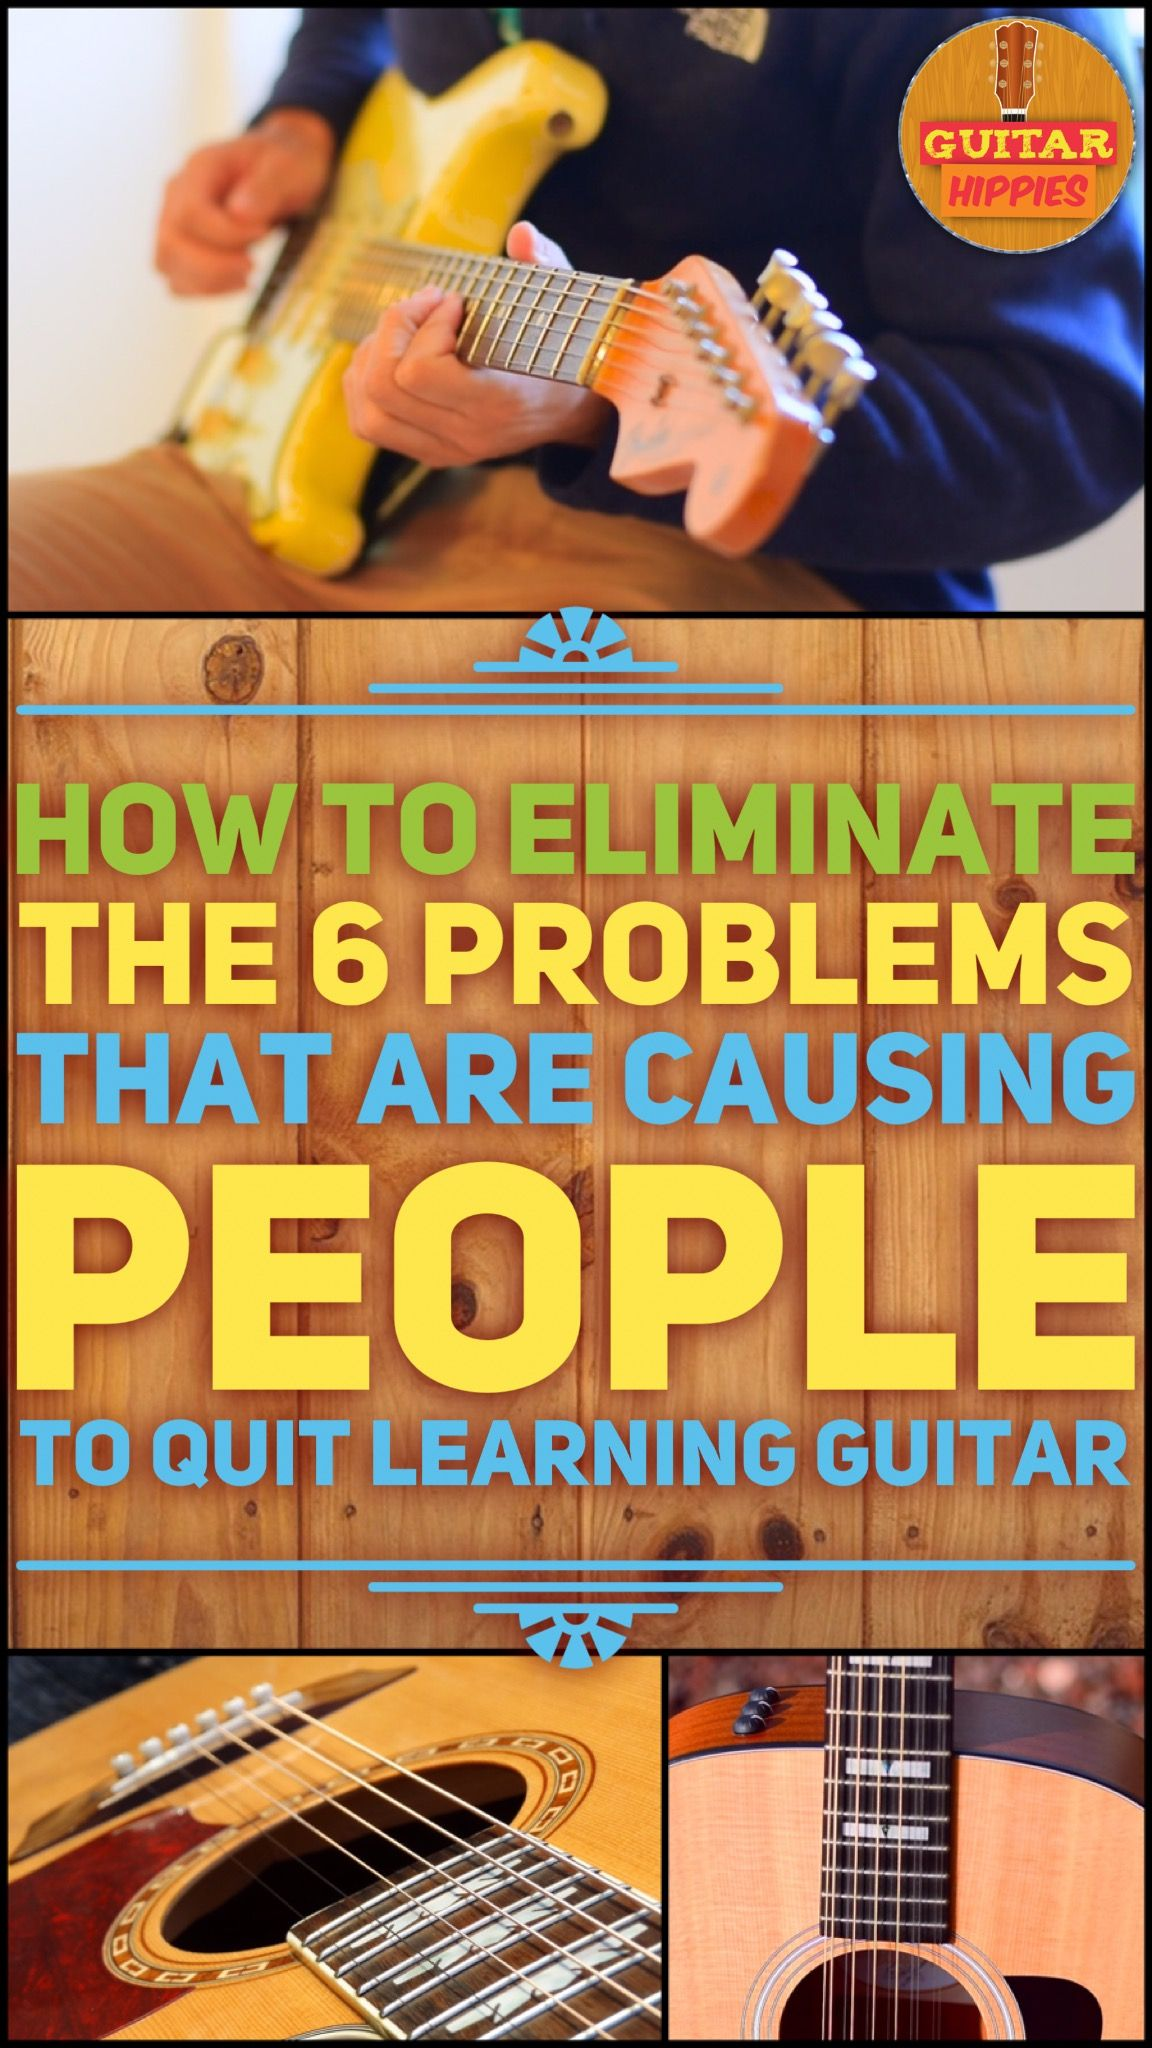 Why people quit guitar? And how to solve those problems? Inside.